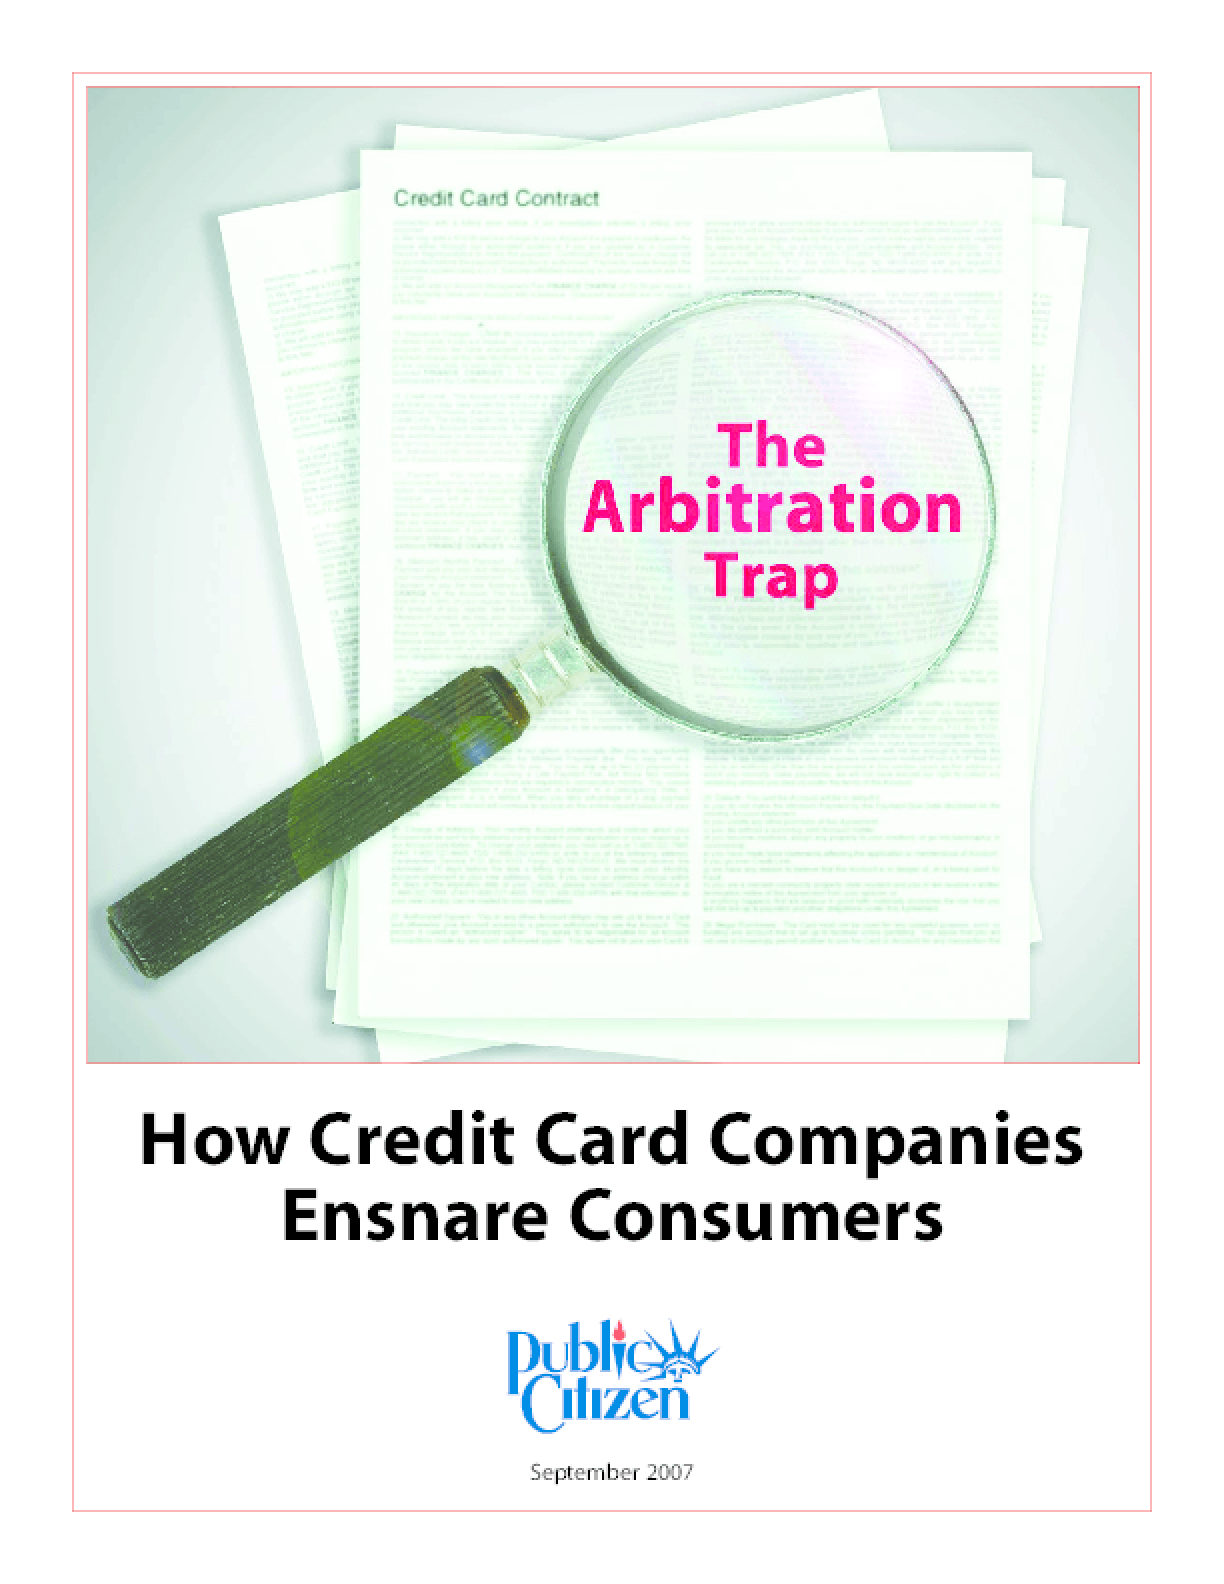 The Arbitration Trap: How Credit Card Companies Ensnare Consumers